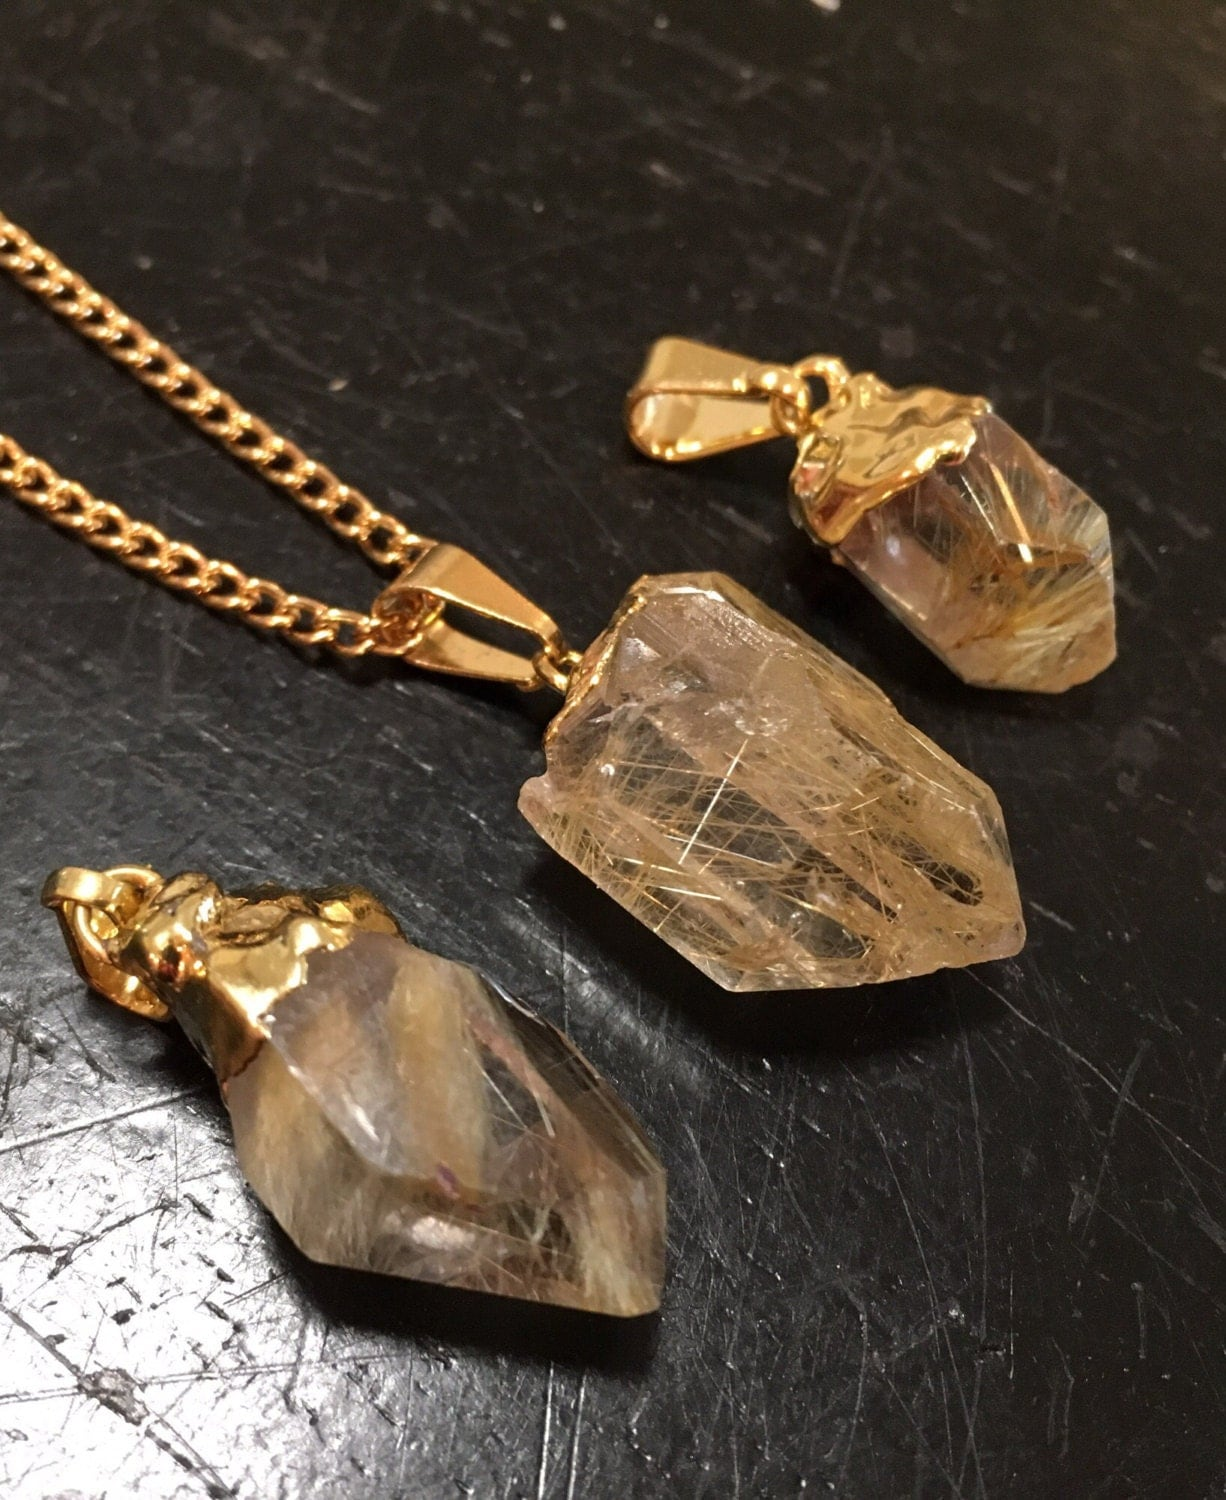 Golden rutilated quartz pendant raw rutilated quartz for Golden rutilated quartz jewelry